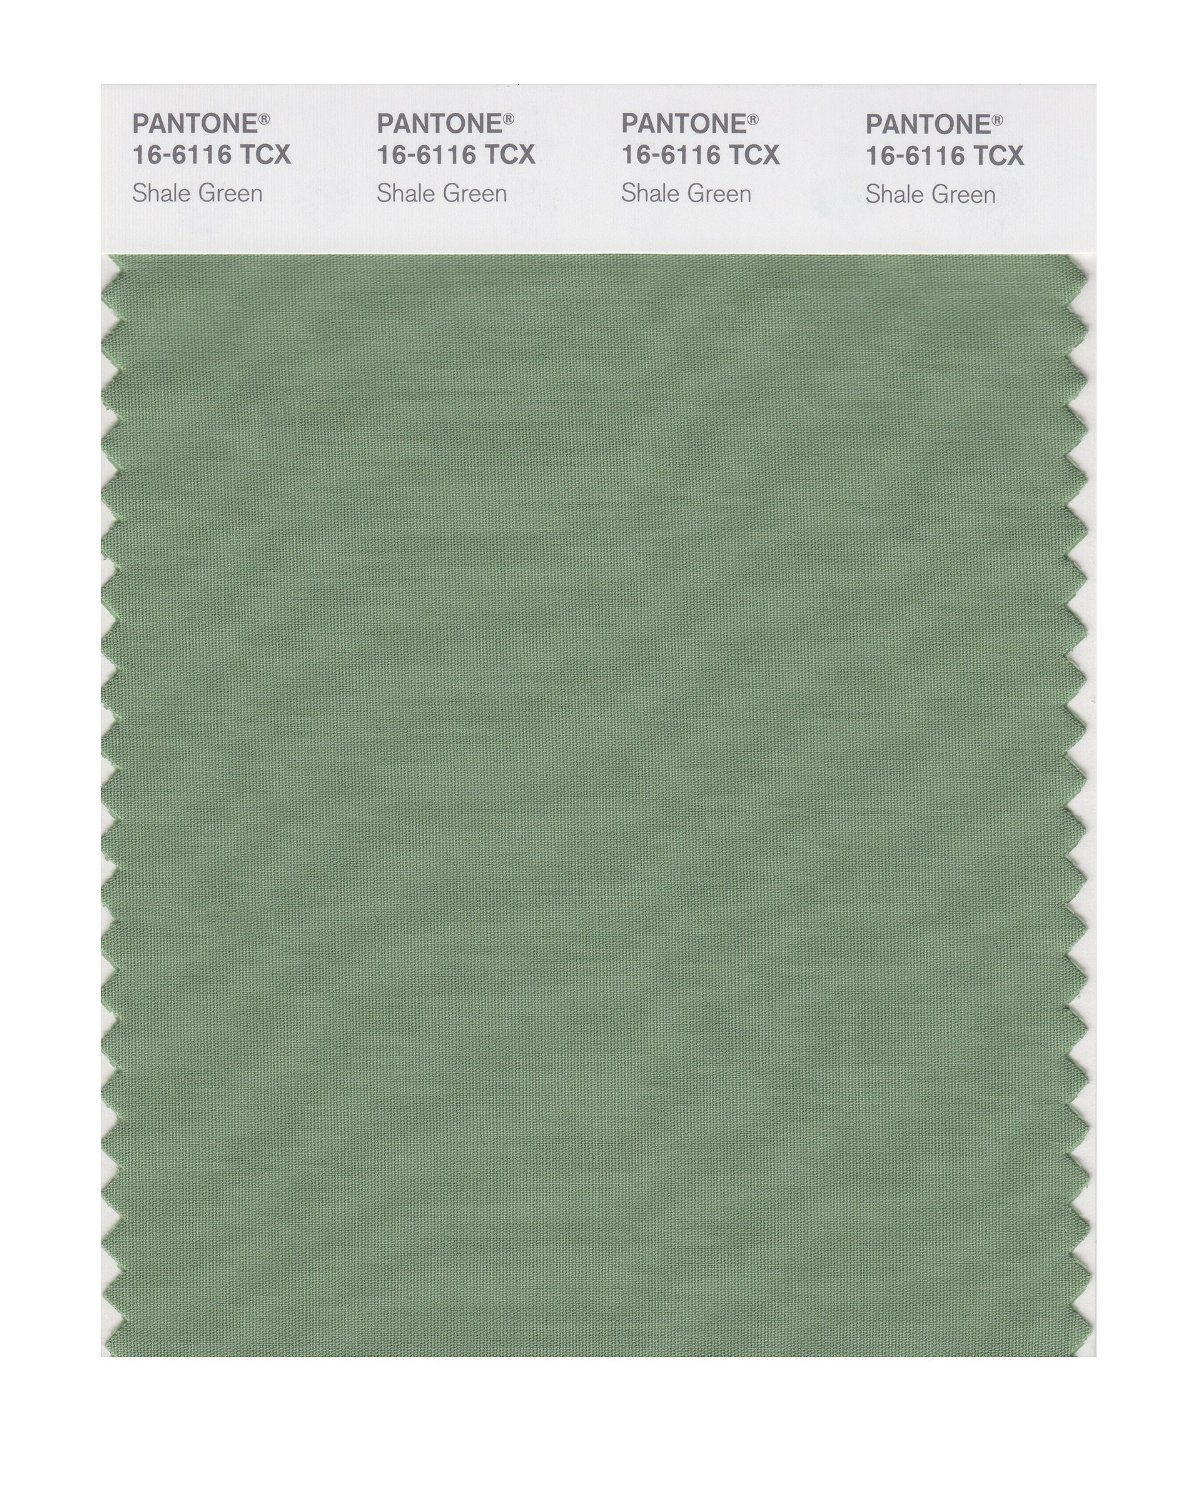 Pantone Smart Swatch 16-6116 Shale Green